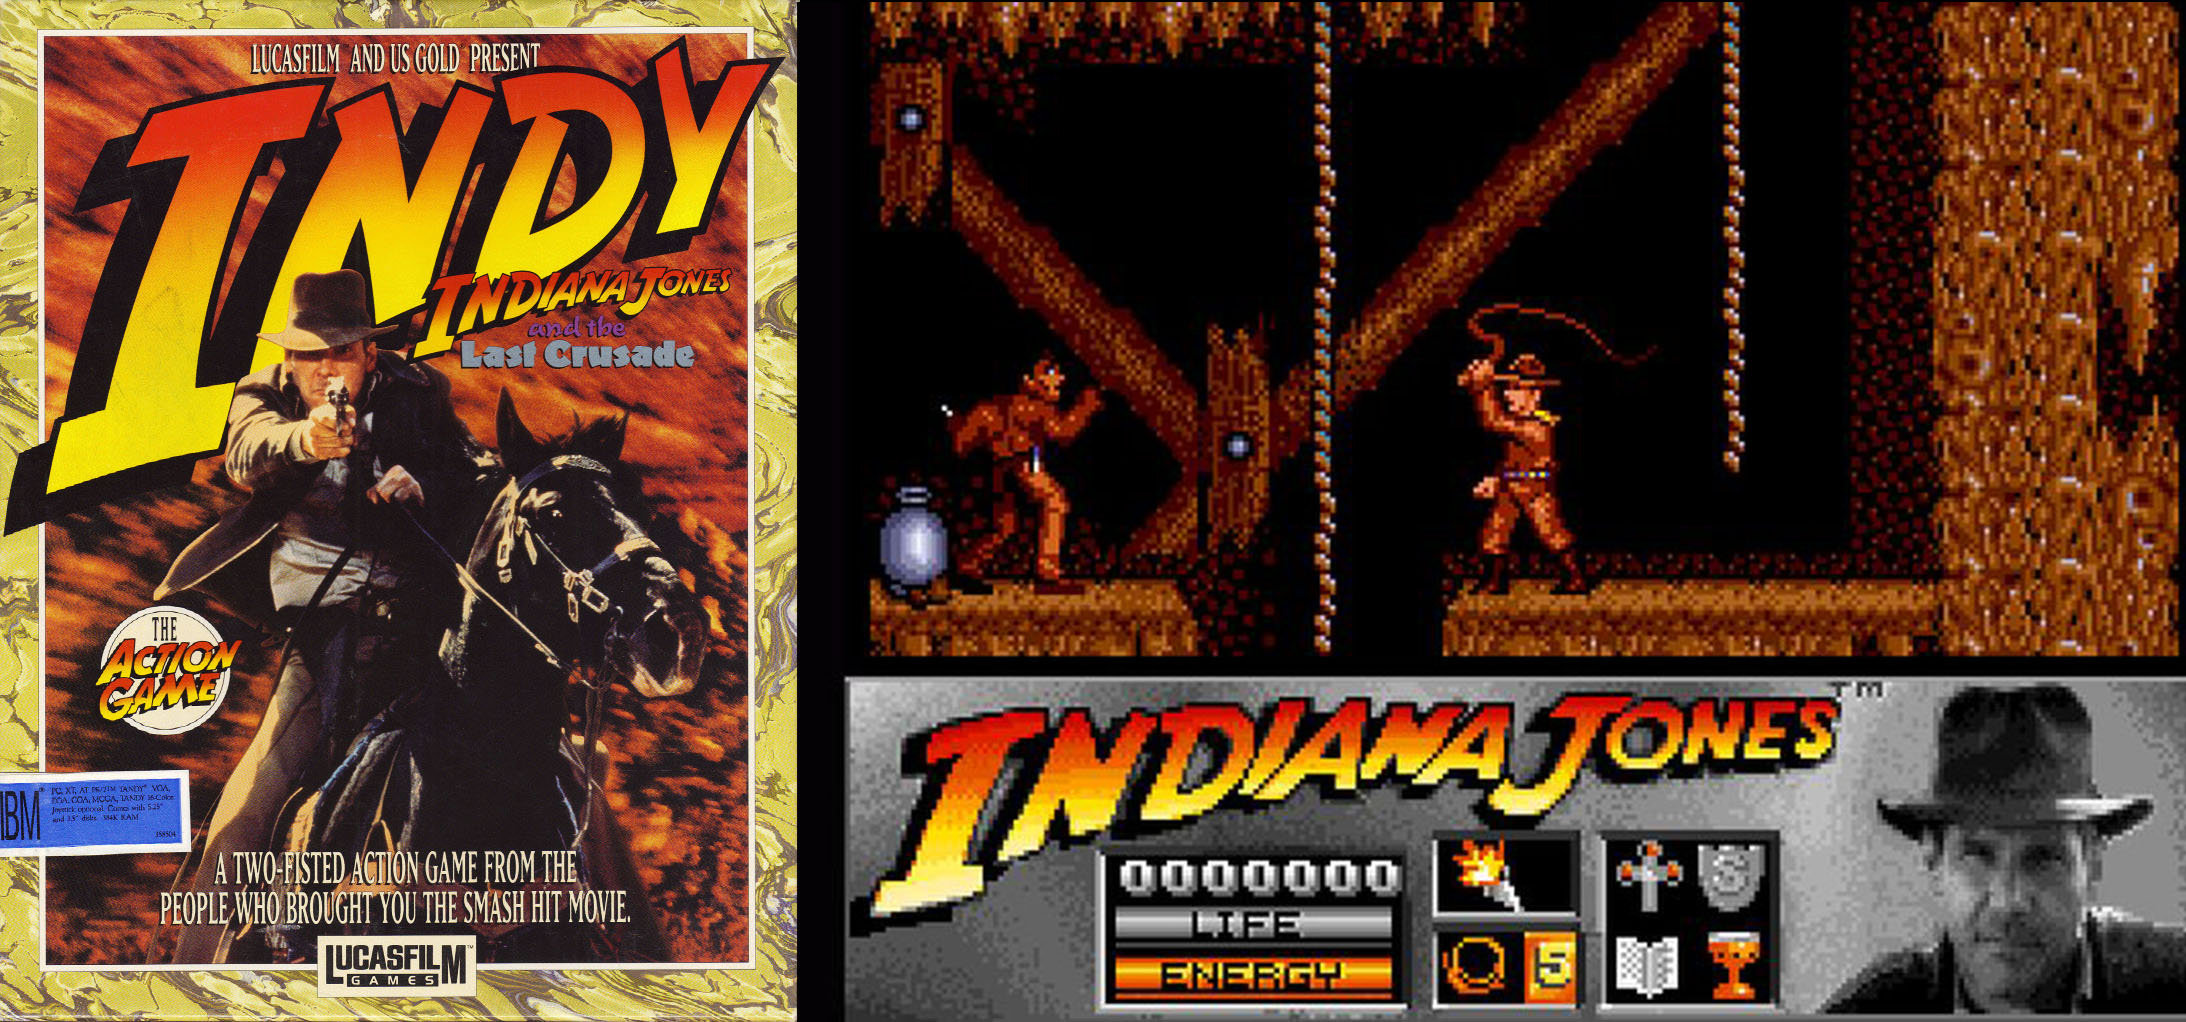 Indiana Jones and the Last Crusade The Action Game 1989